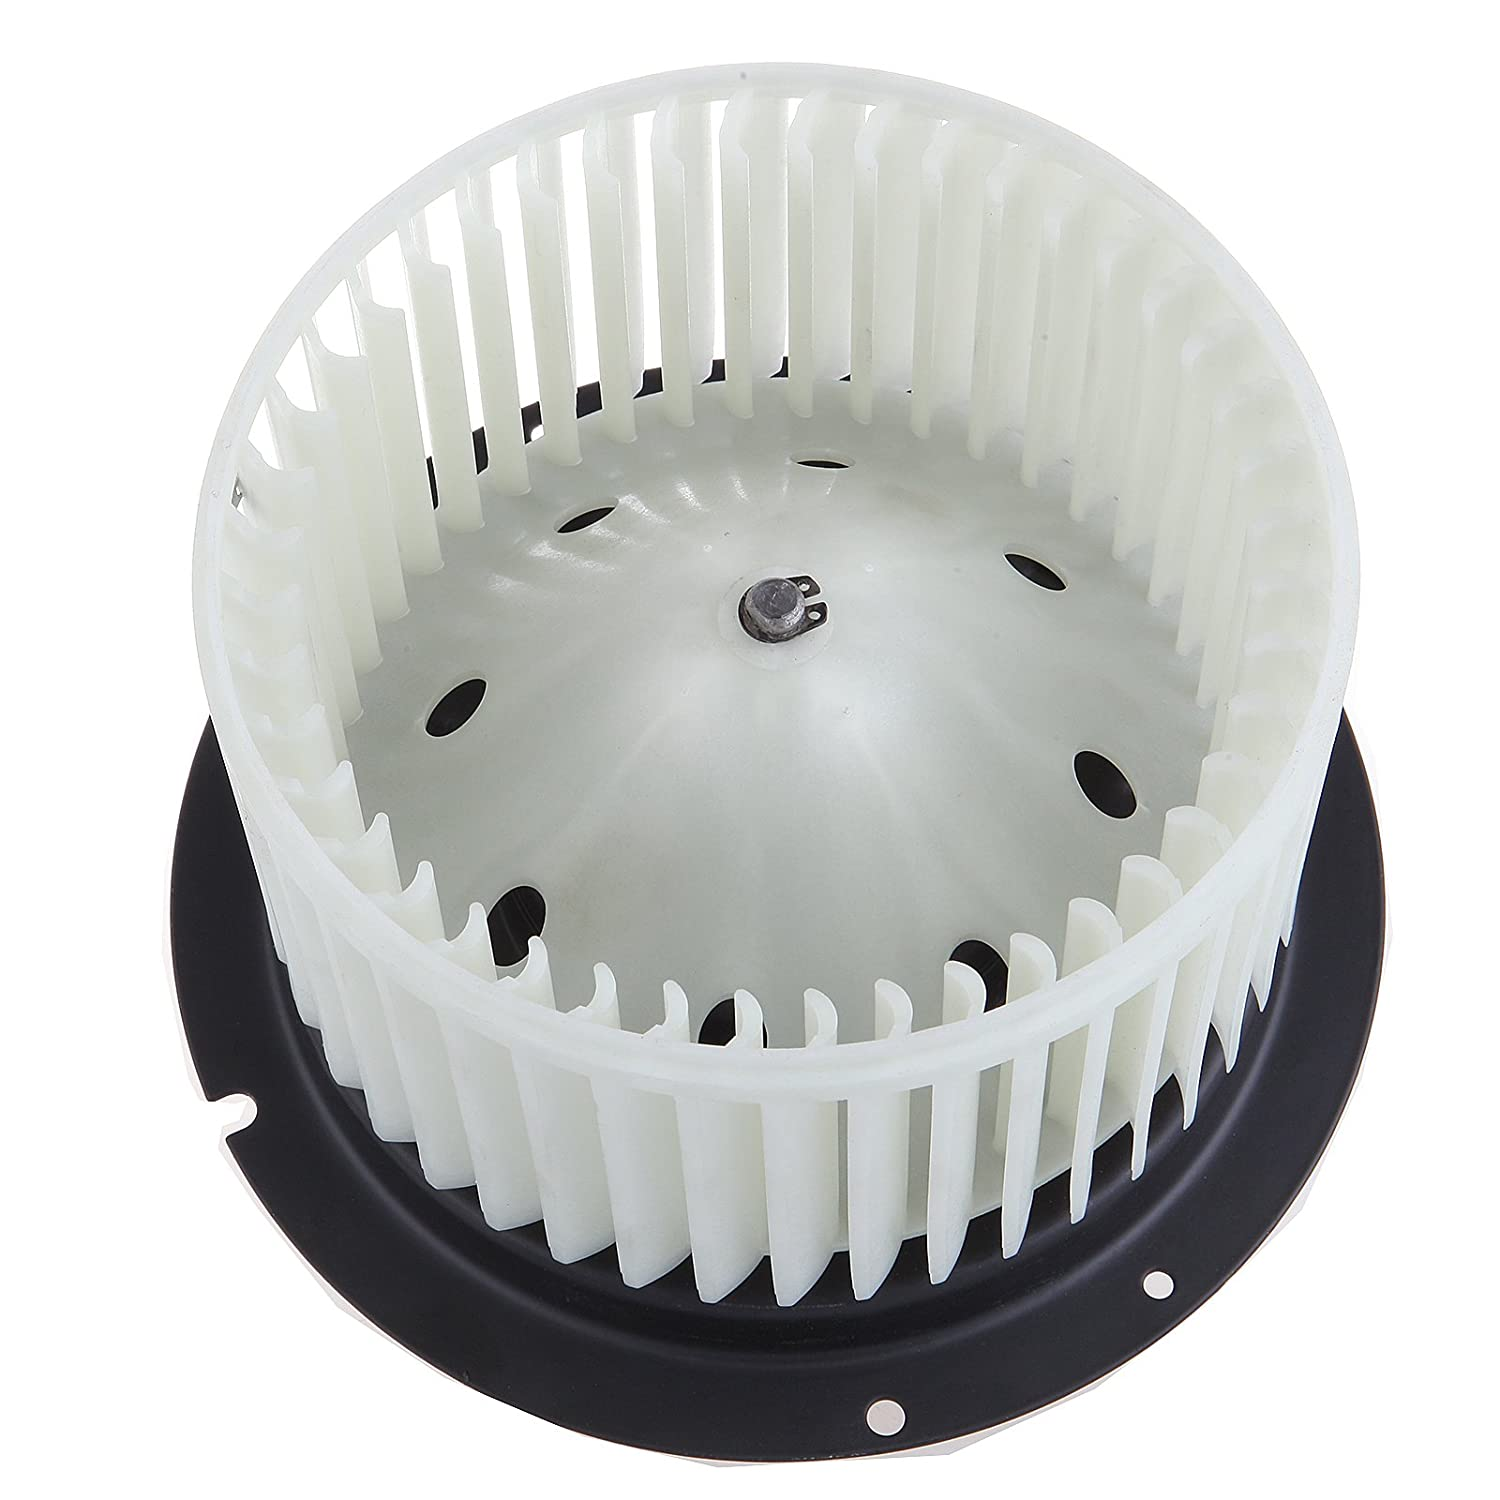 ABS plastic Heater Blower Motor w/Fan Cage ECCPP fit for 2000-2005 Ford Excursion /1999-2007 Ford F250 /1999-2007 Ford F350 /1999-2003 Ford F450 Truck /1999-2003 Ford F550 Truck 058378-5211-0939442